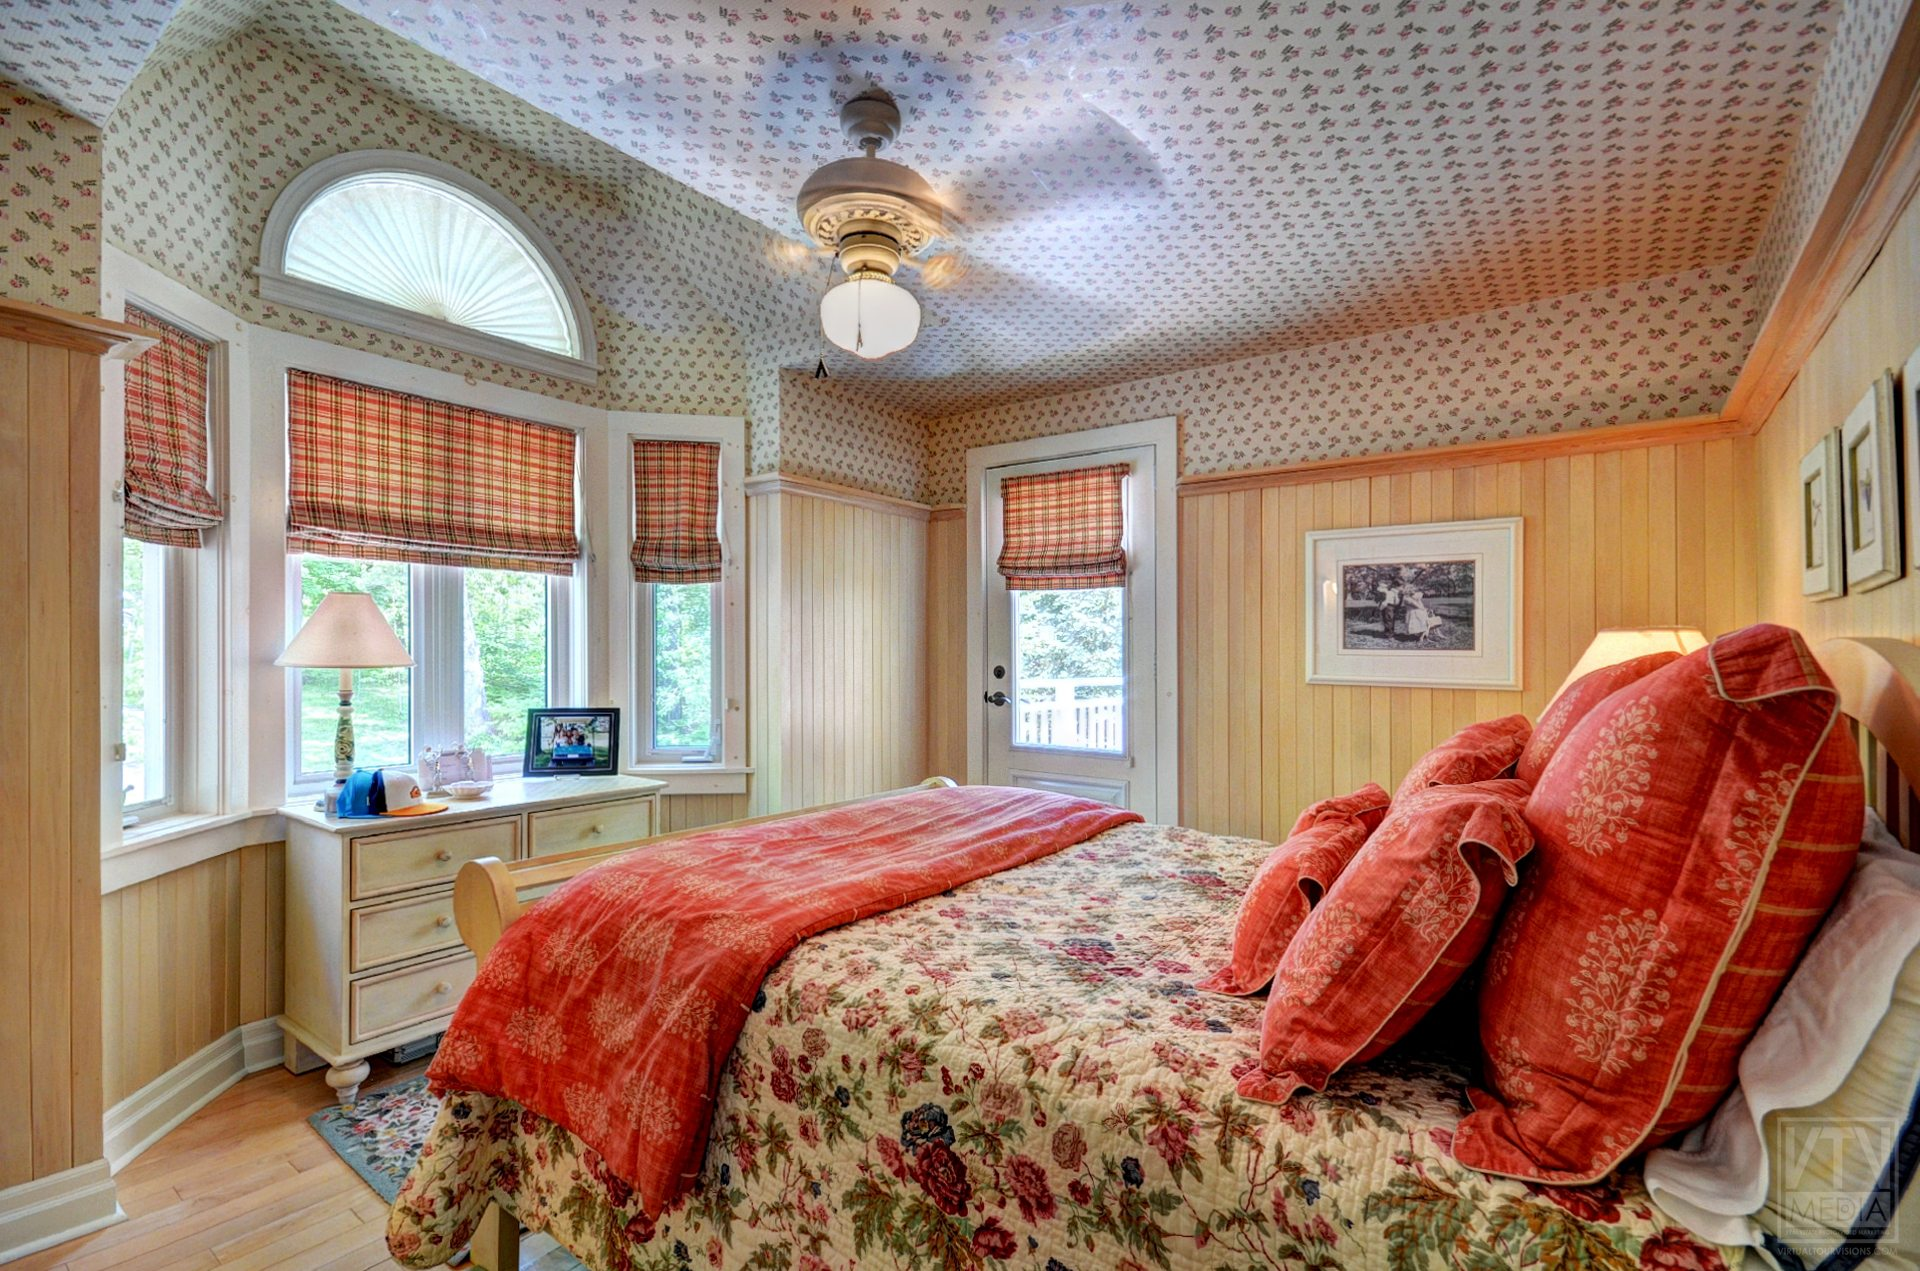 milford-bay-cottage-for-sale-1022-milford-manor-road-8